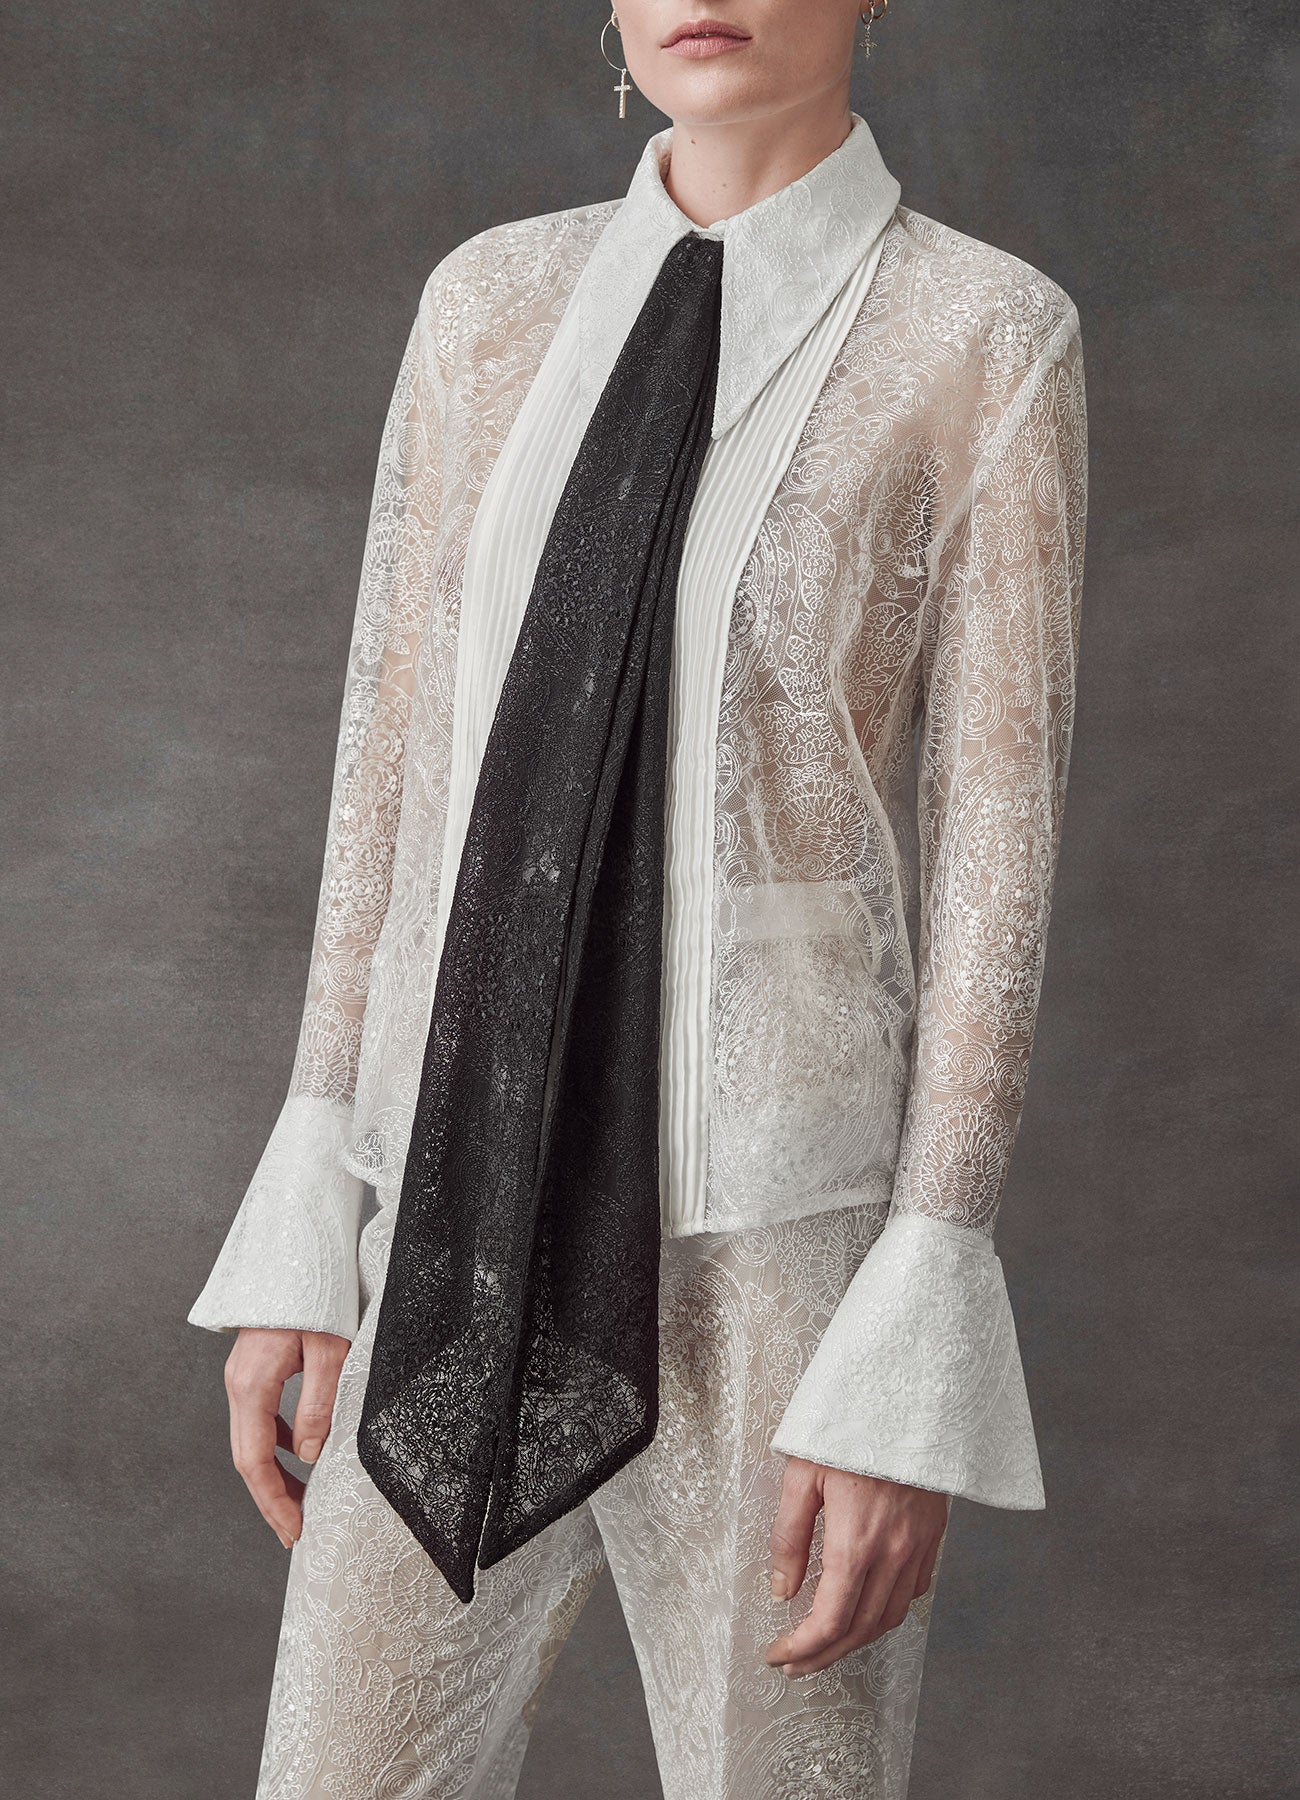 Serenity Silk Lace Shirt